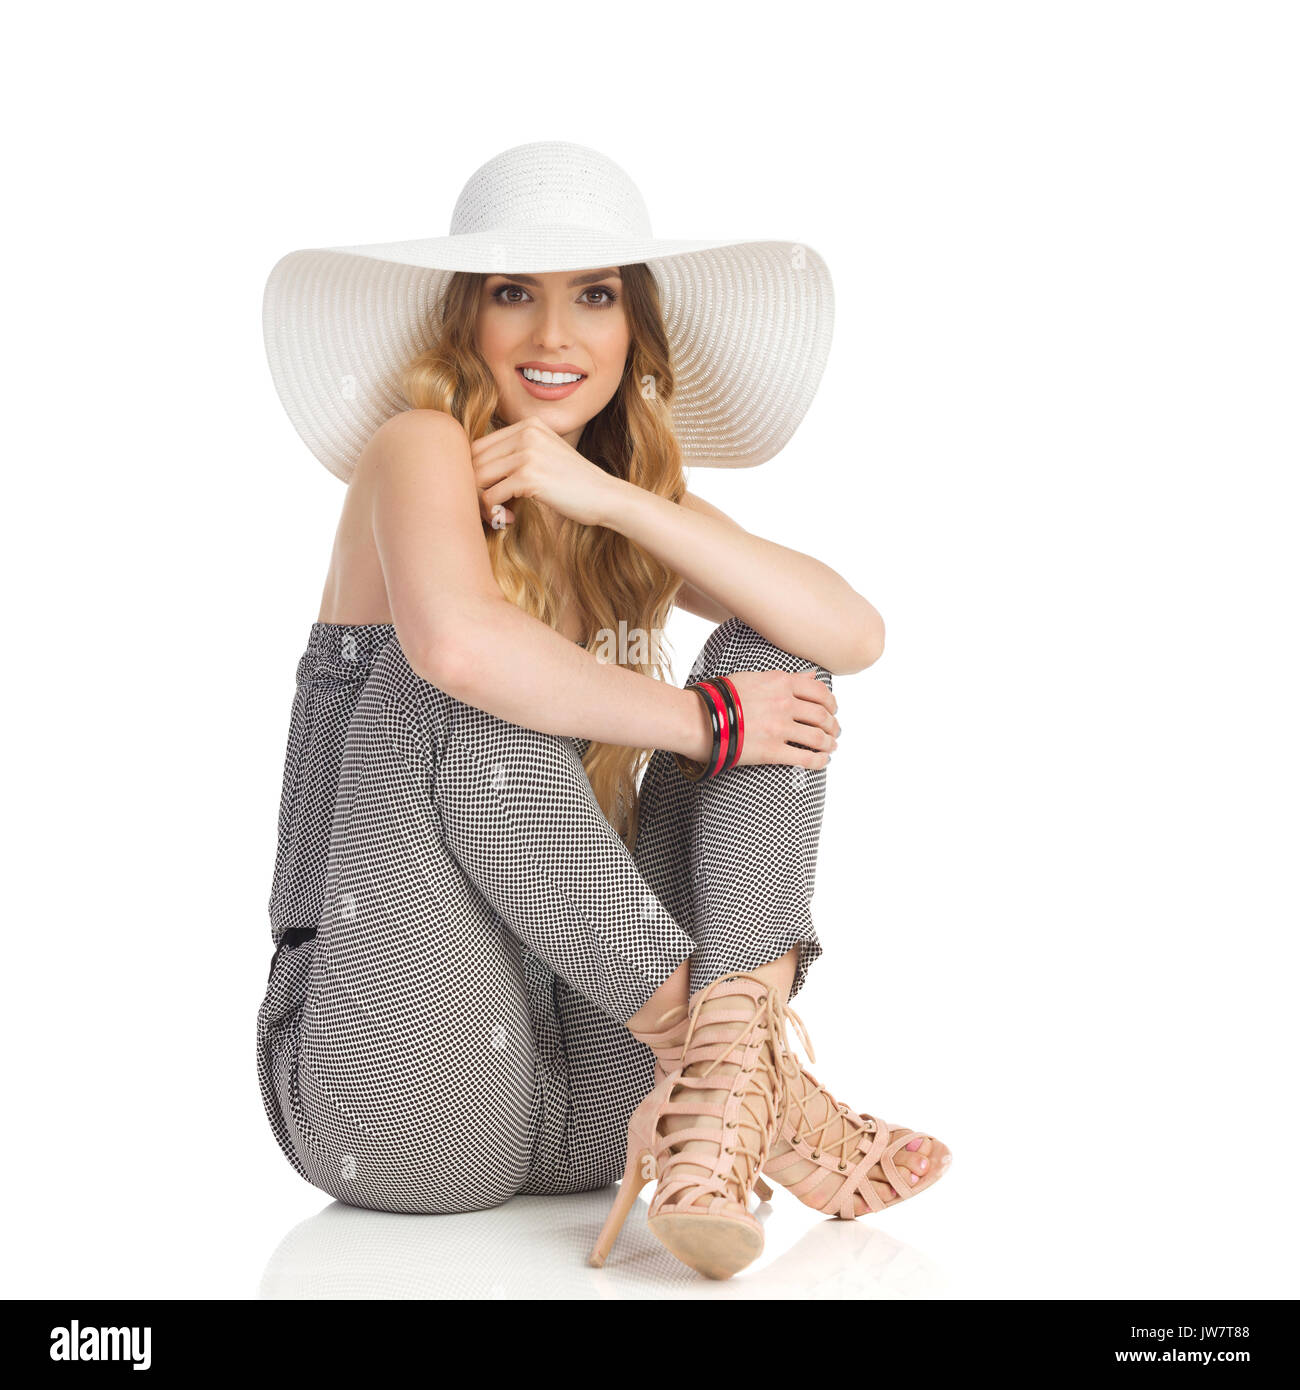 Young beautiful woman in jumpsuit, high heels and white sun hat is sitting relaxed on floor, smiling and looking at camera. Full length studio shot is - Stock Image